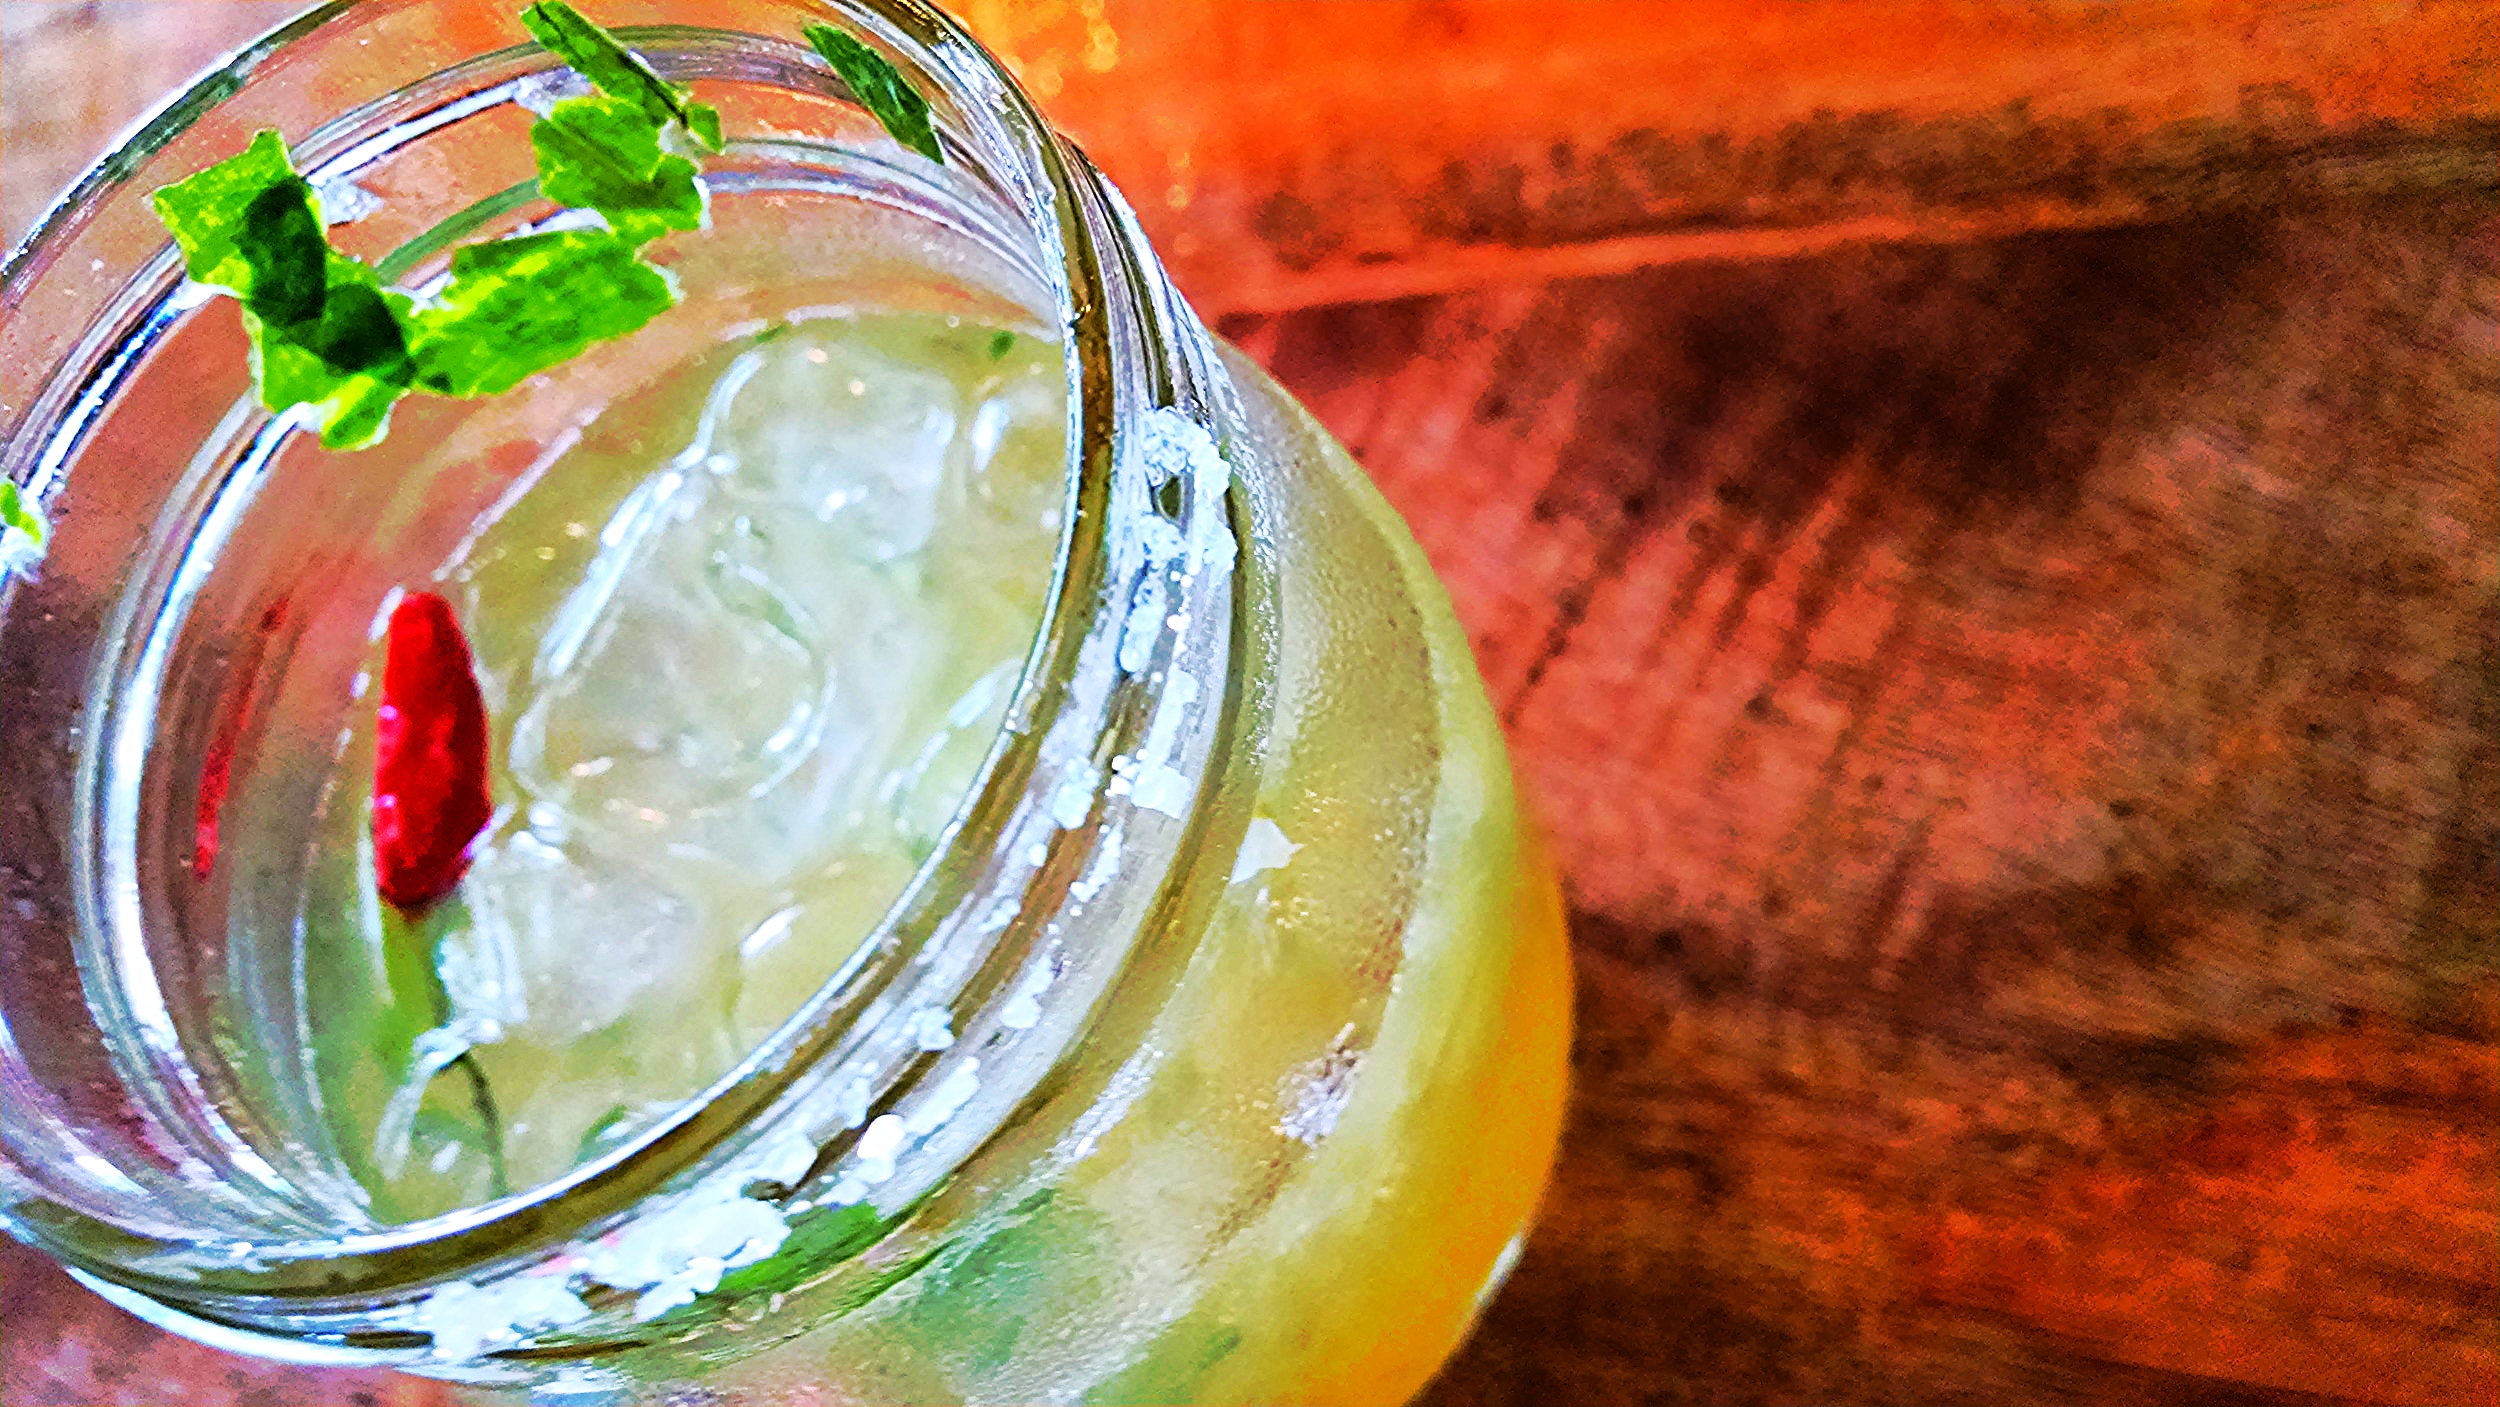 Refreshing, electrolyte replenishing non-alcoholic drink with a bit of spice for your day!